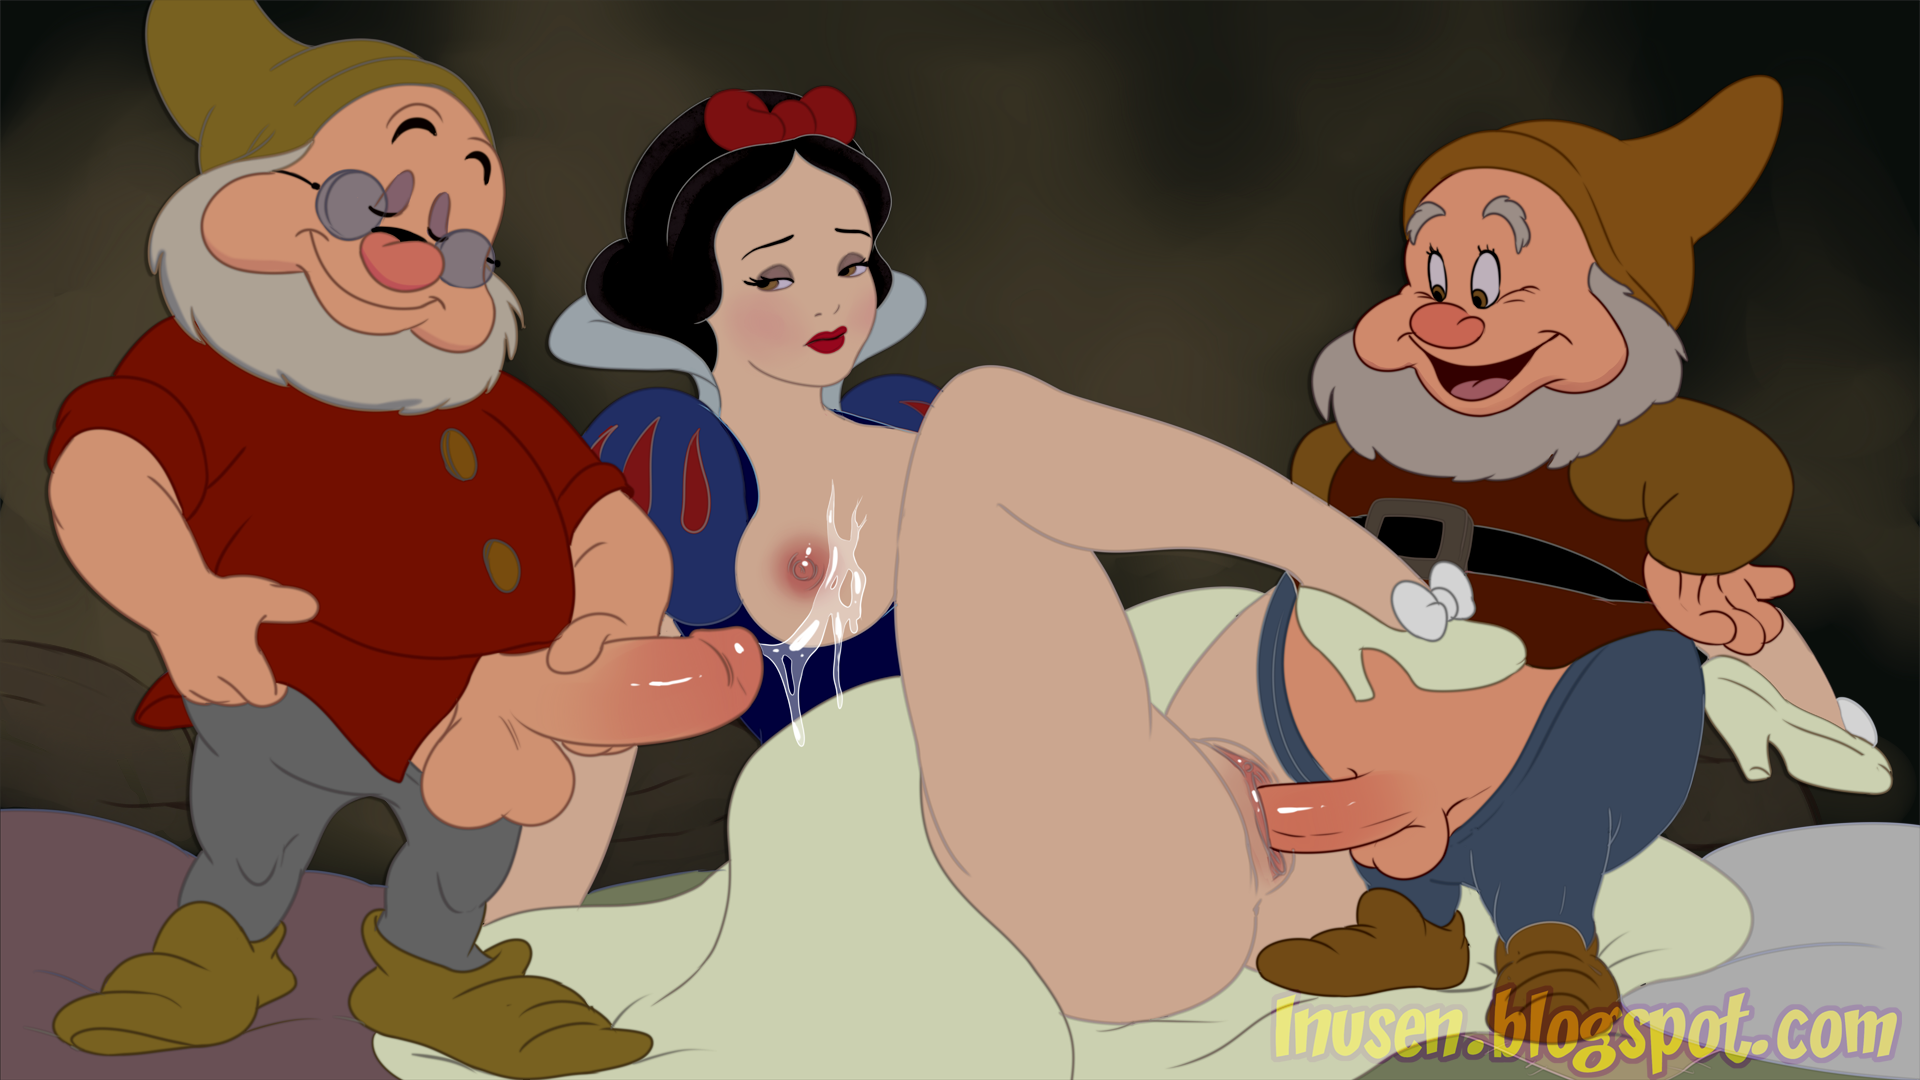 Snowwhite and the seven dwafsex porno movie sex photos